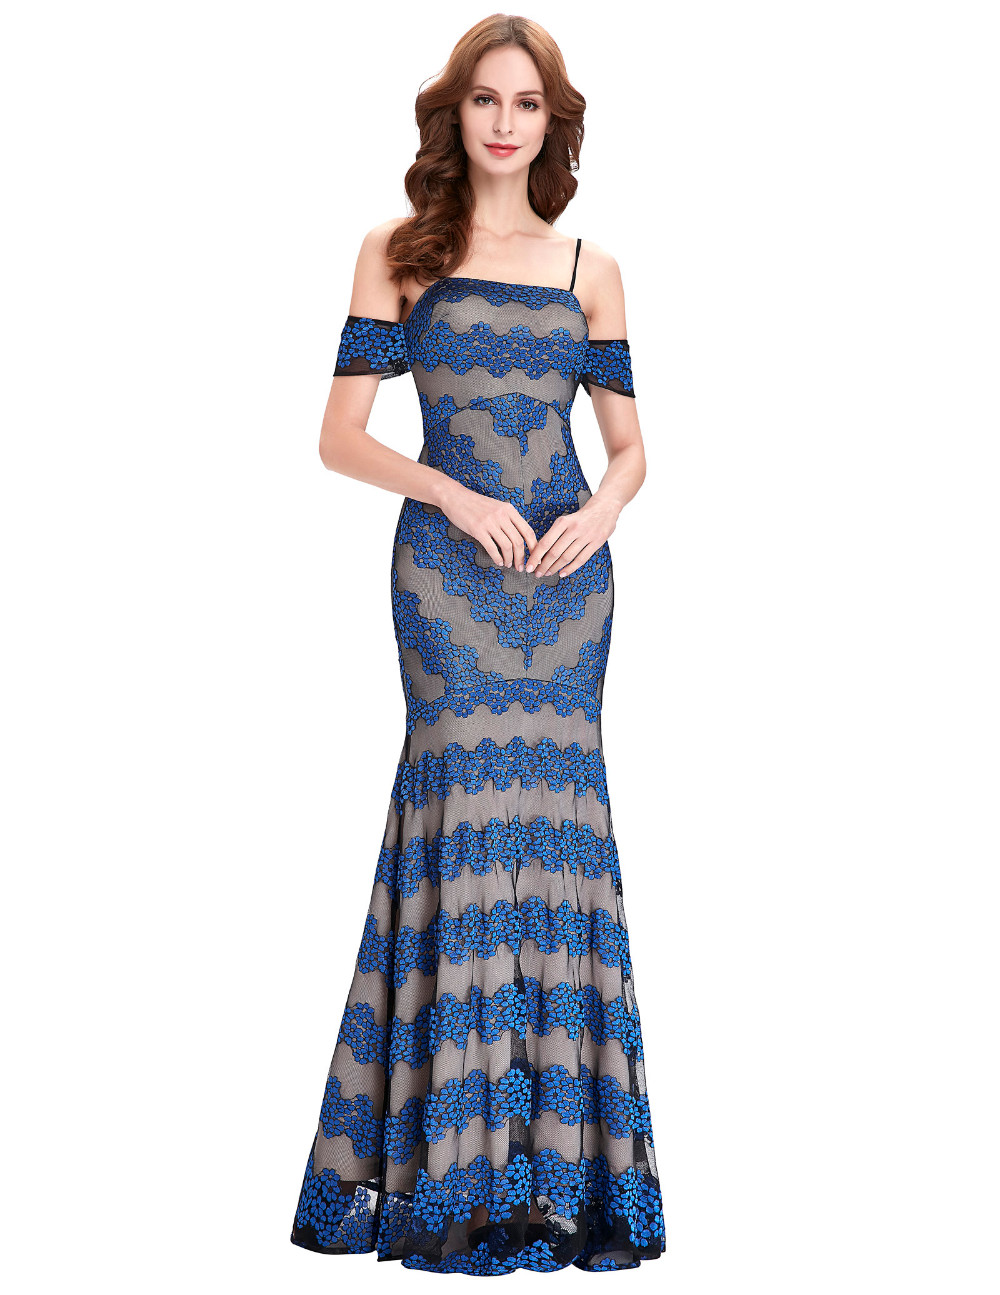 Free Shipping Women Slim Line Bandage Dress Mermaid Evening Dresses Long  Backless Formal Evening Party Gowns 6080USD 41.30 piece 39294c2b130a